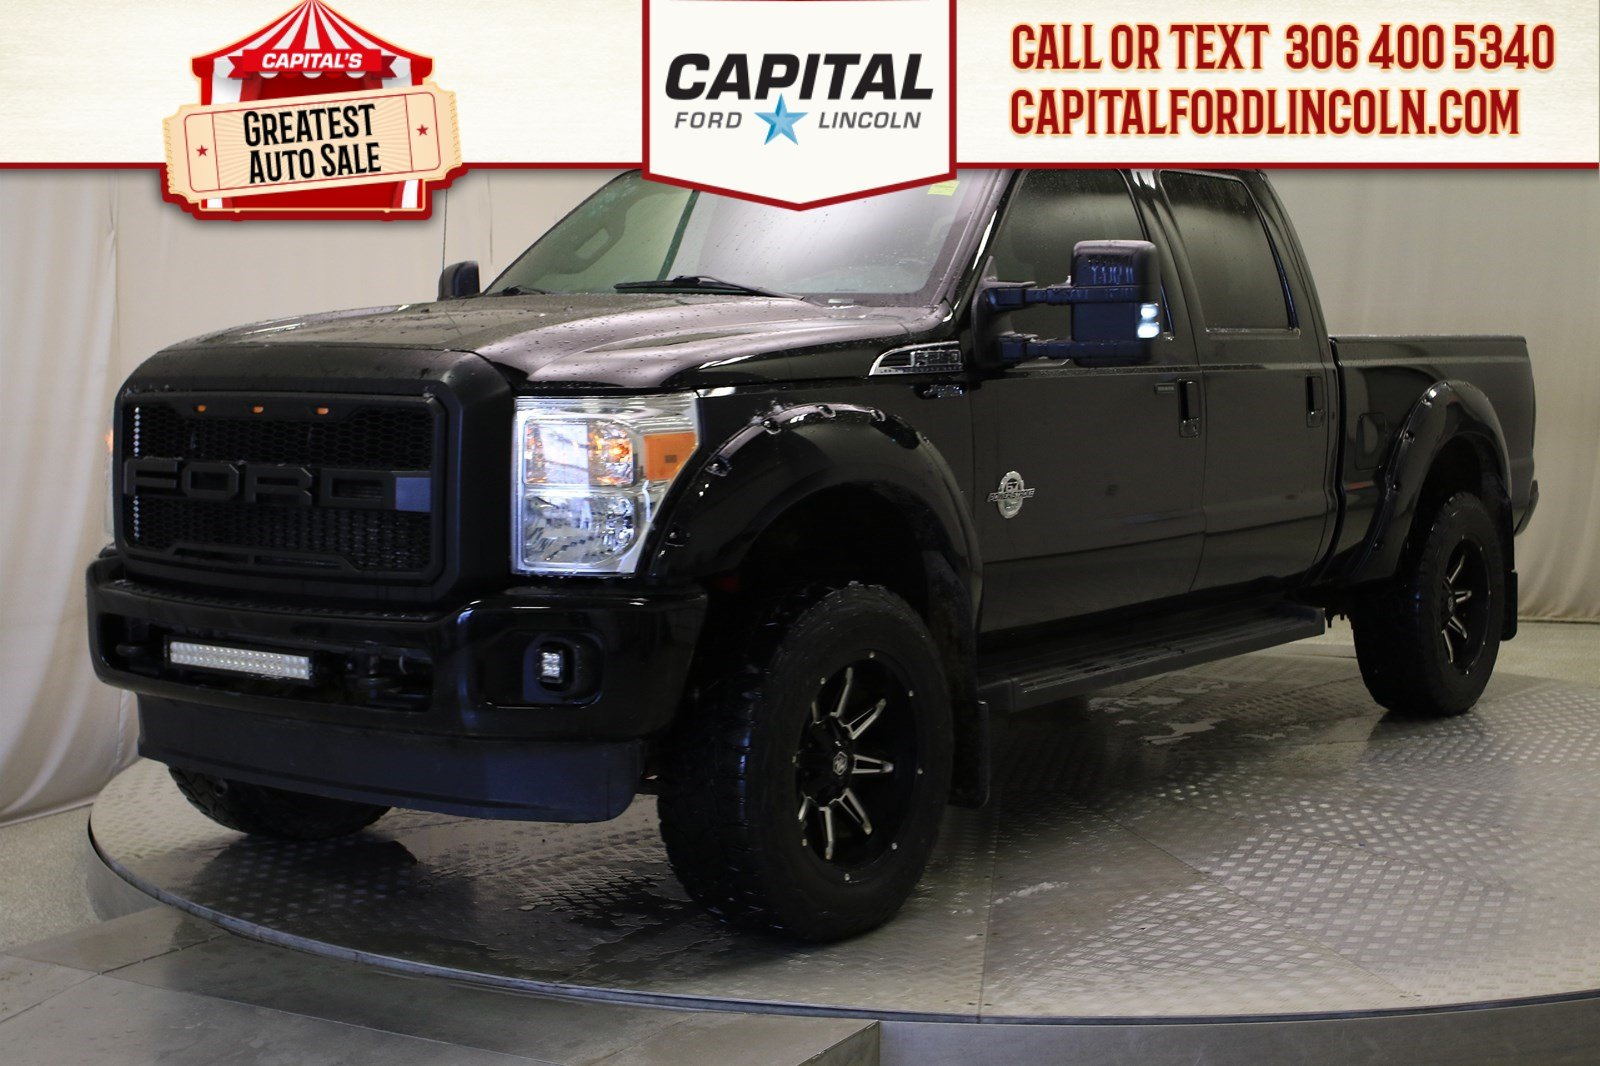 Pre-Owned 2016 Ford Super Duty F-250 SRW Lariat | Diesel | Lifted |